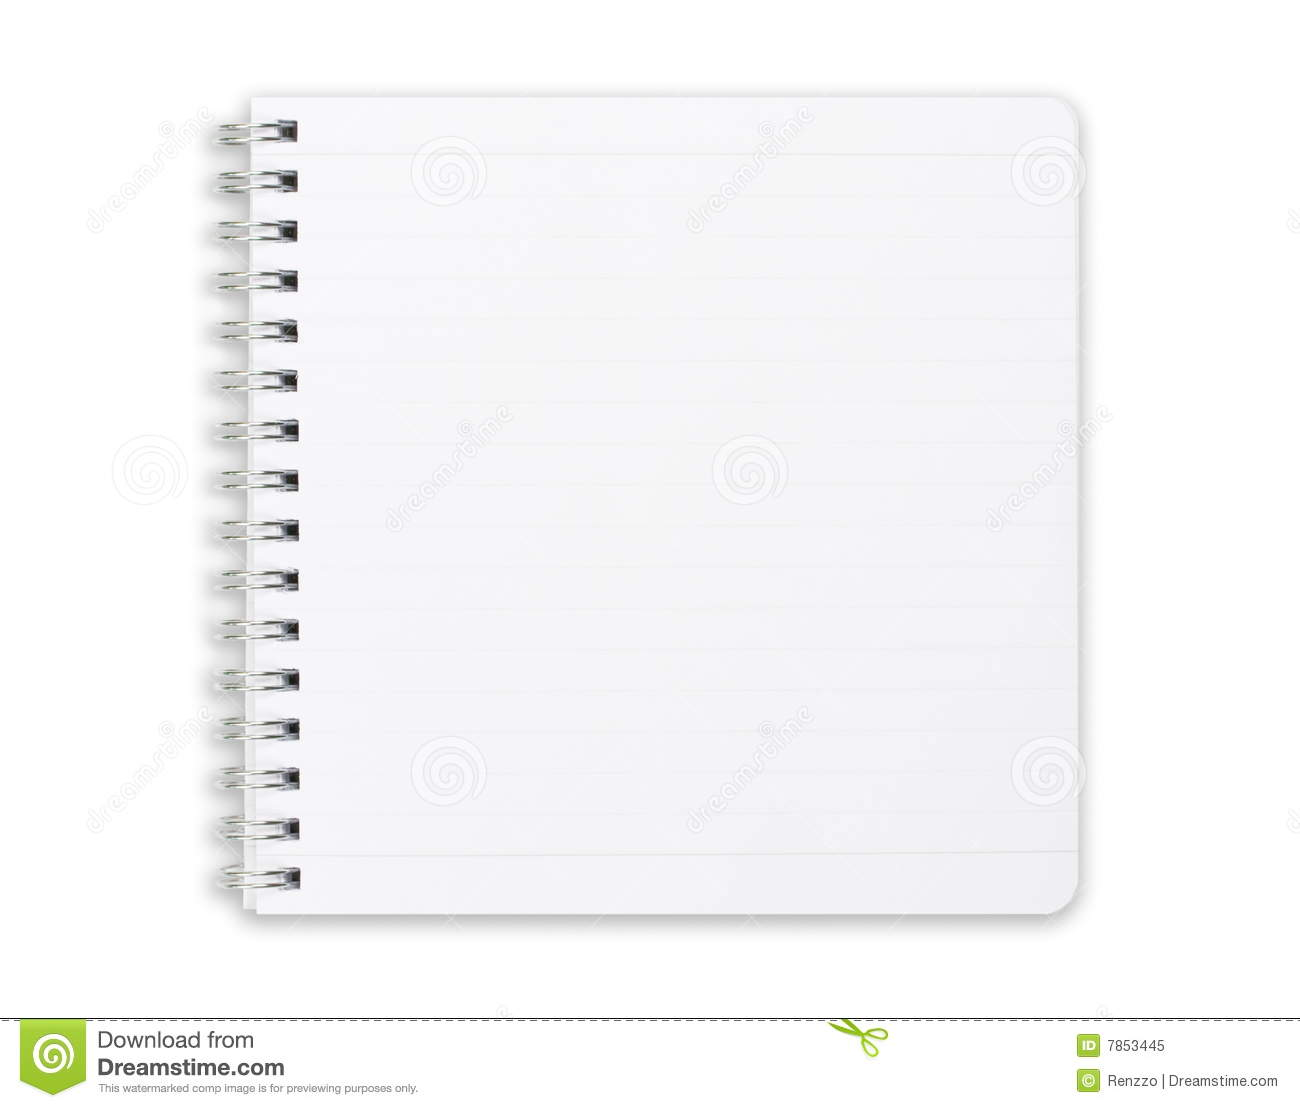 Square notebook isolated on white.